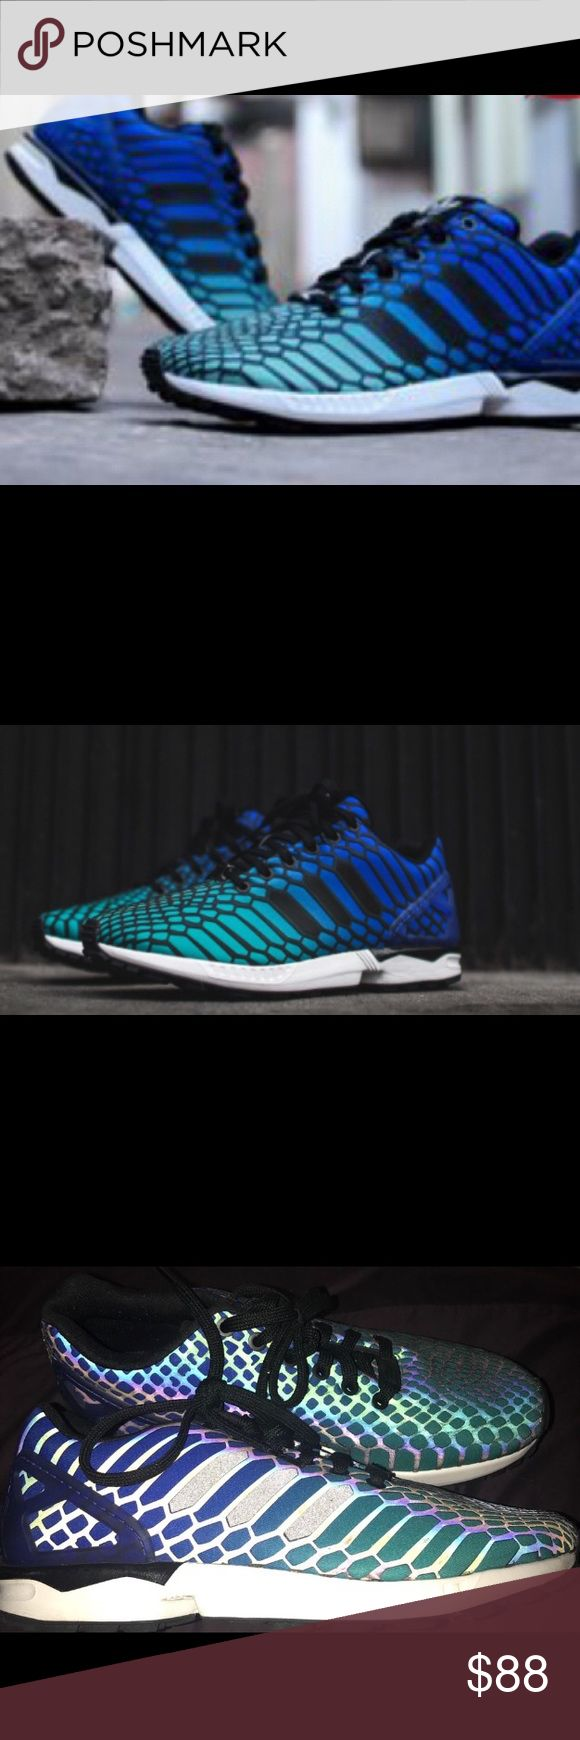 Womens White Bright Black Adidas Zx Flux Weave W Cyan Shoes 100% Authentic